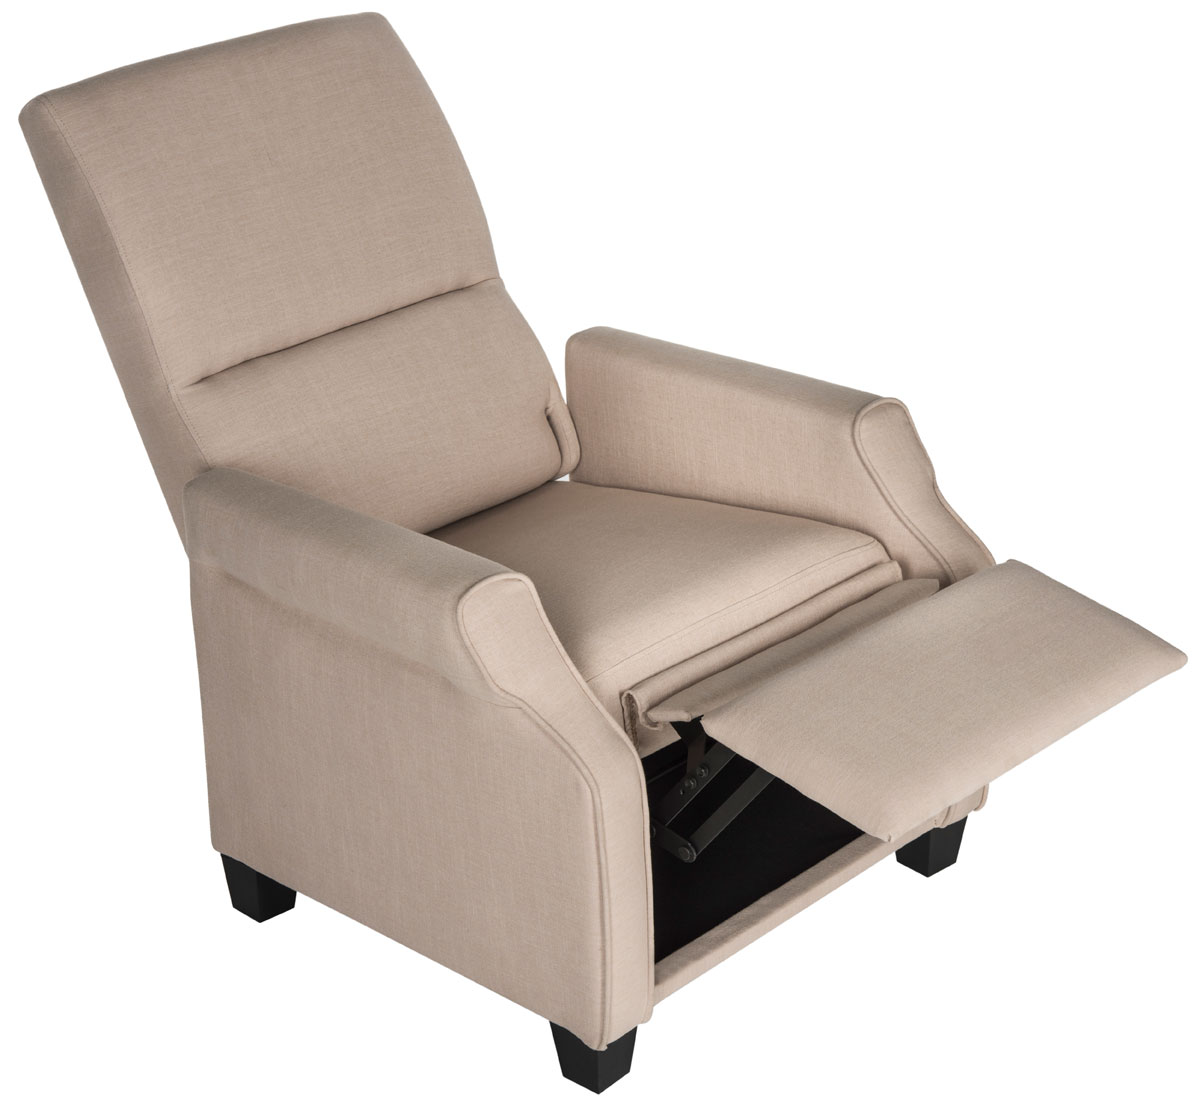 HAMILTON RECLINER CHAIR FOX6220A RECLINERS. Color Beige  sc 1 st  Safavieh.com & FOX6220A Recliners - Furniture by Safavieh islam-shia.org